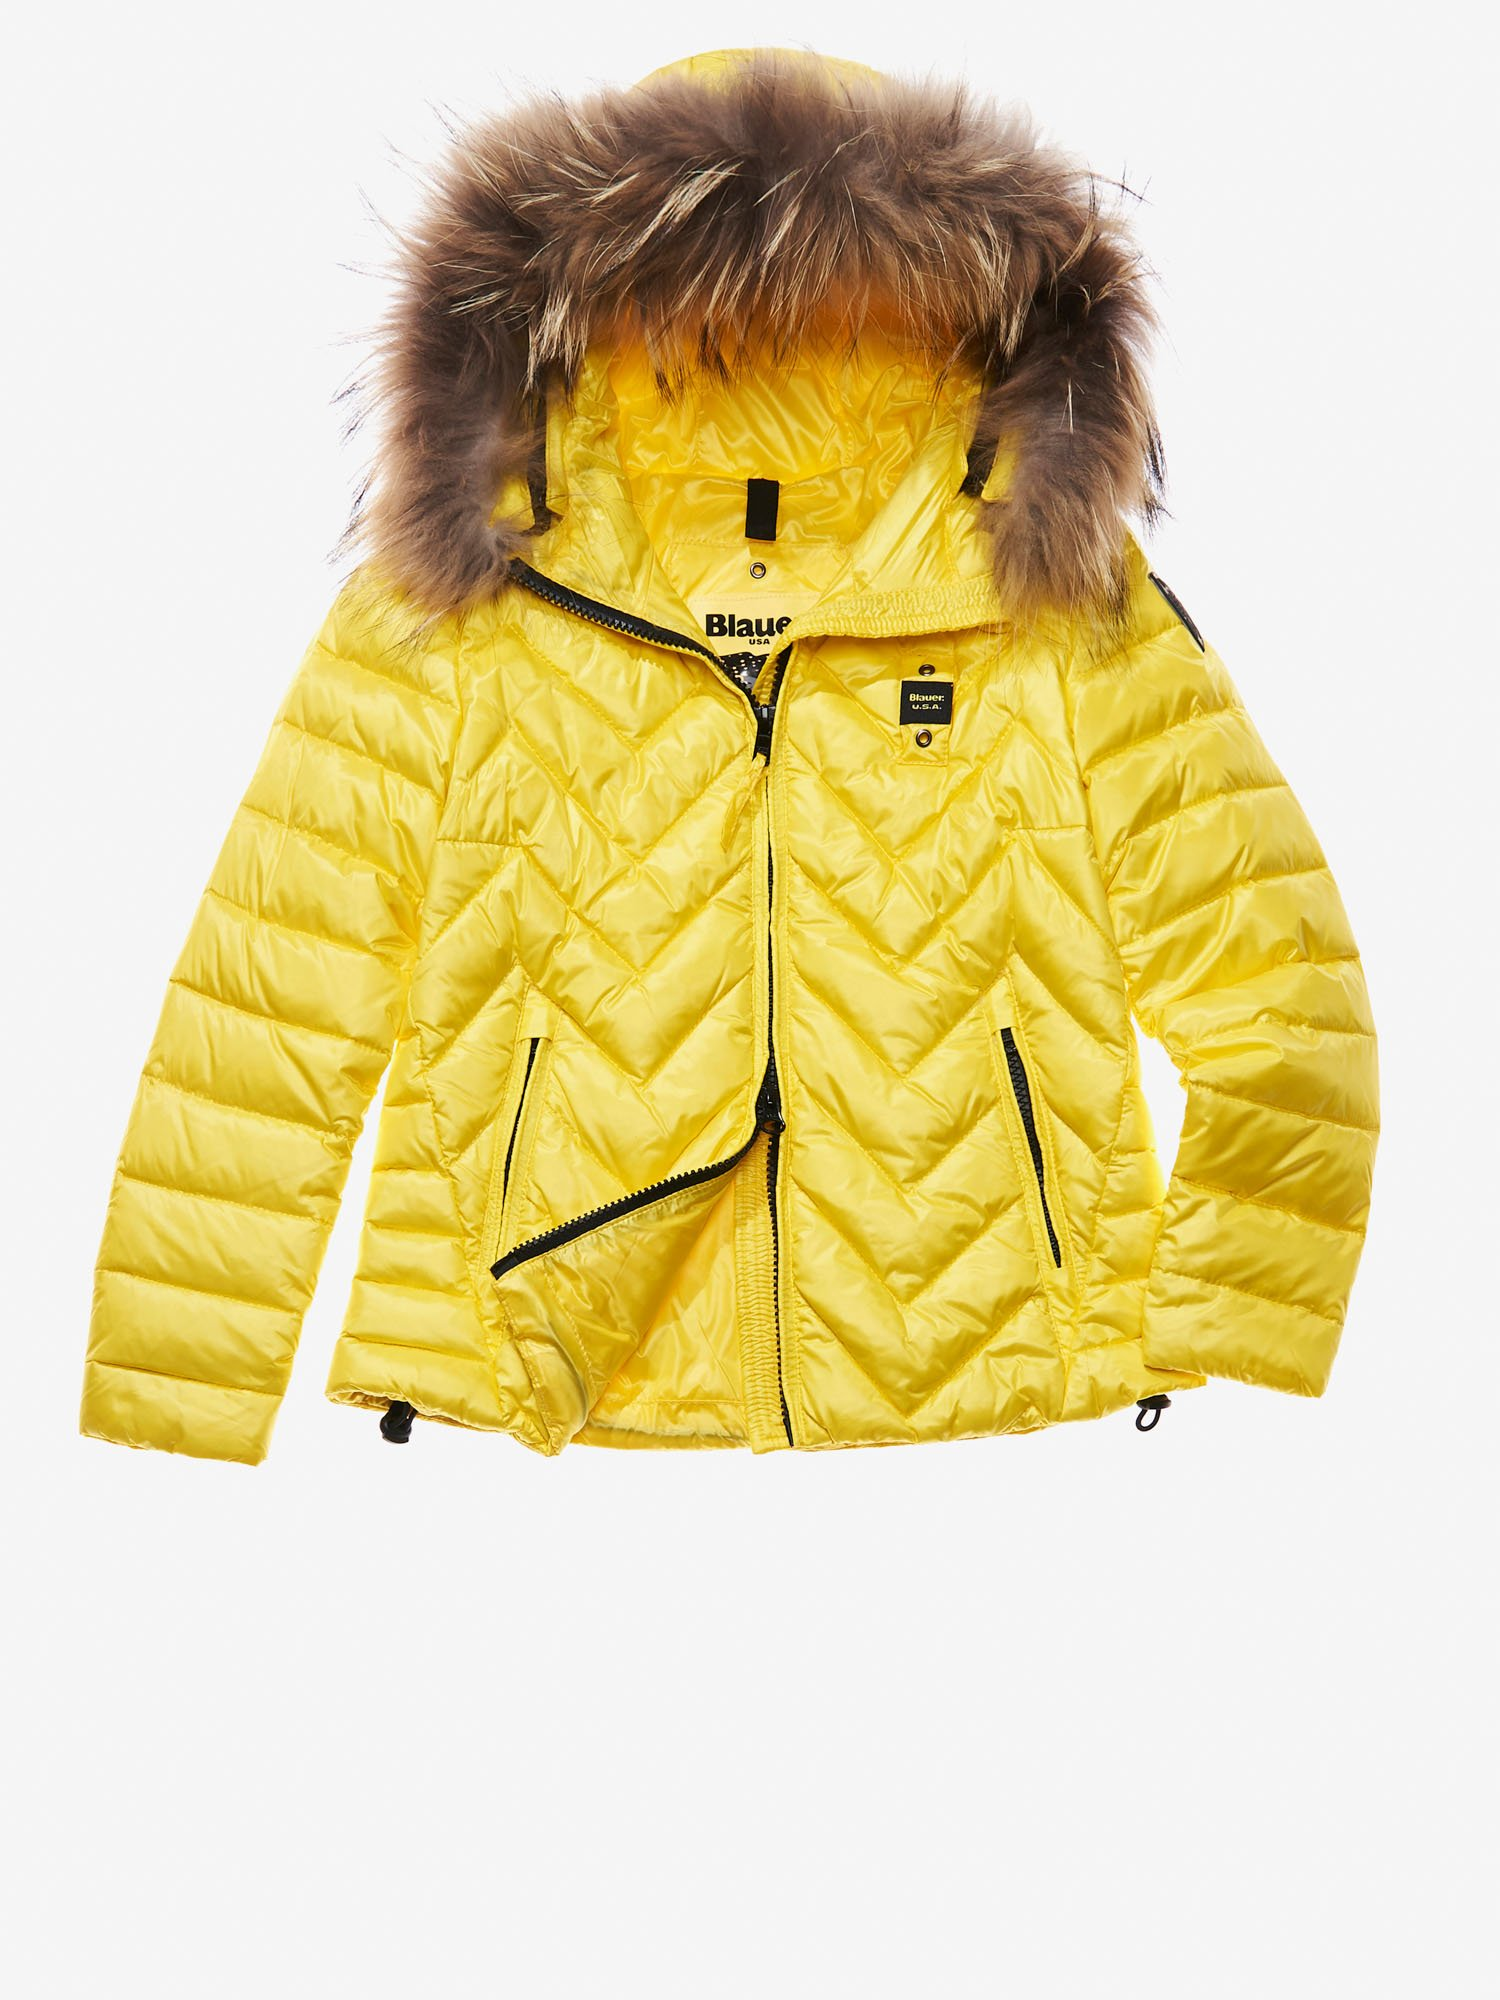 Blauer - ASIA ZIG ZAG-QUILTED DOWN JACKET WITH ATTACHED HOOD - Acid Yellow - Blauer